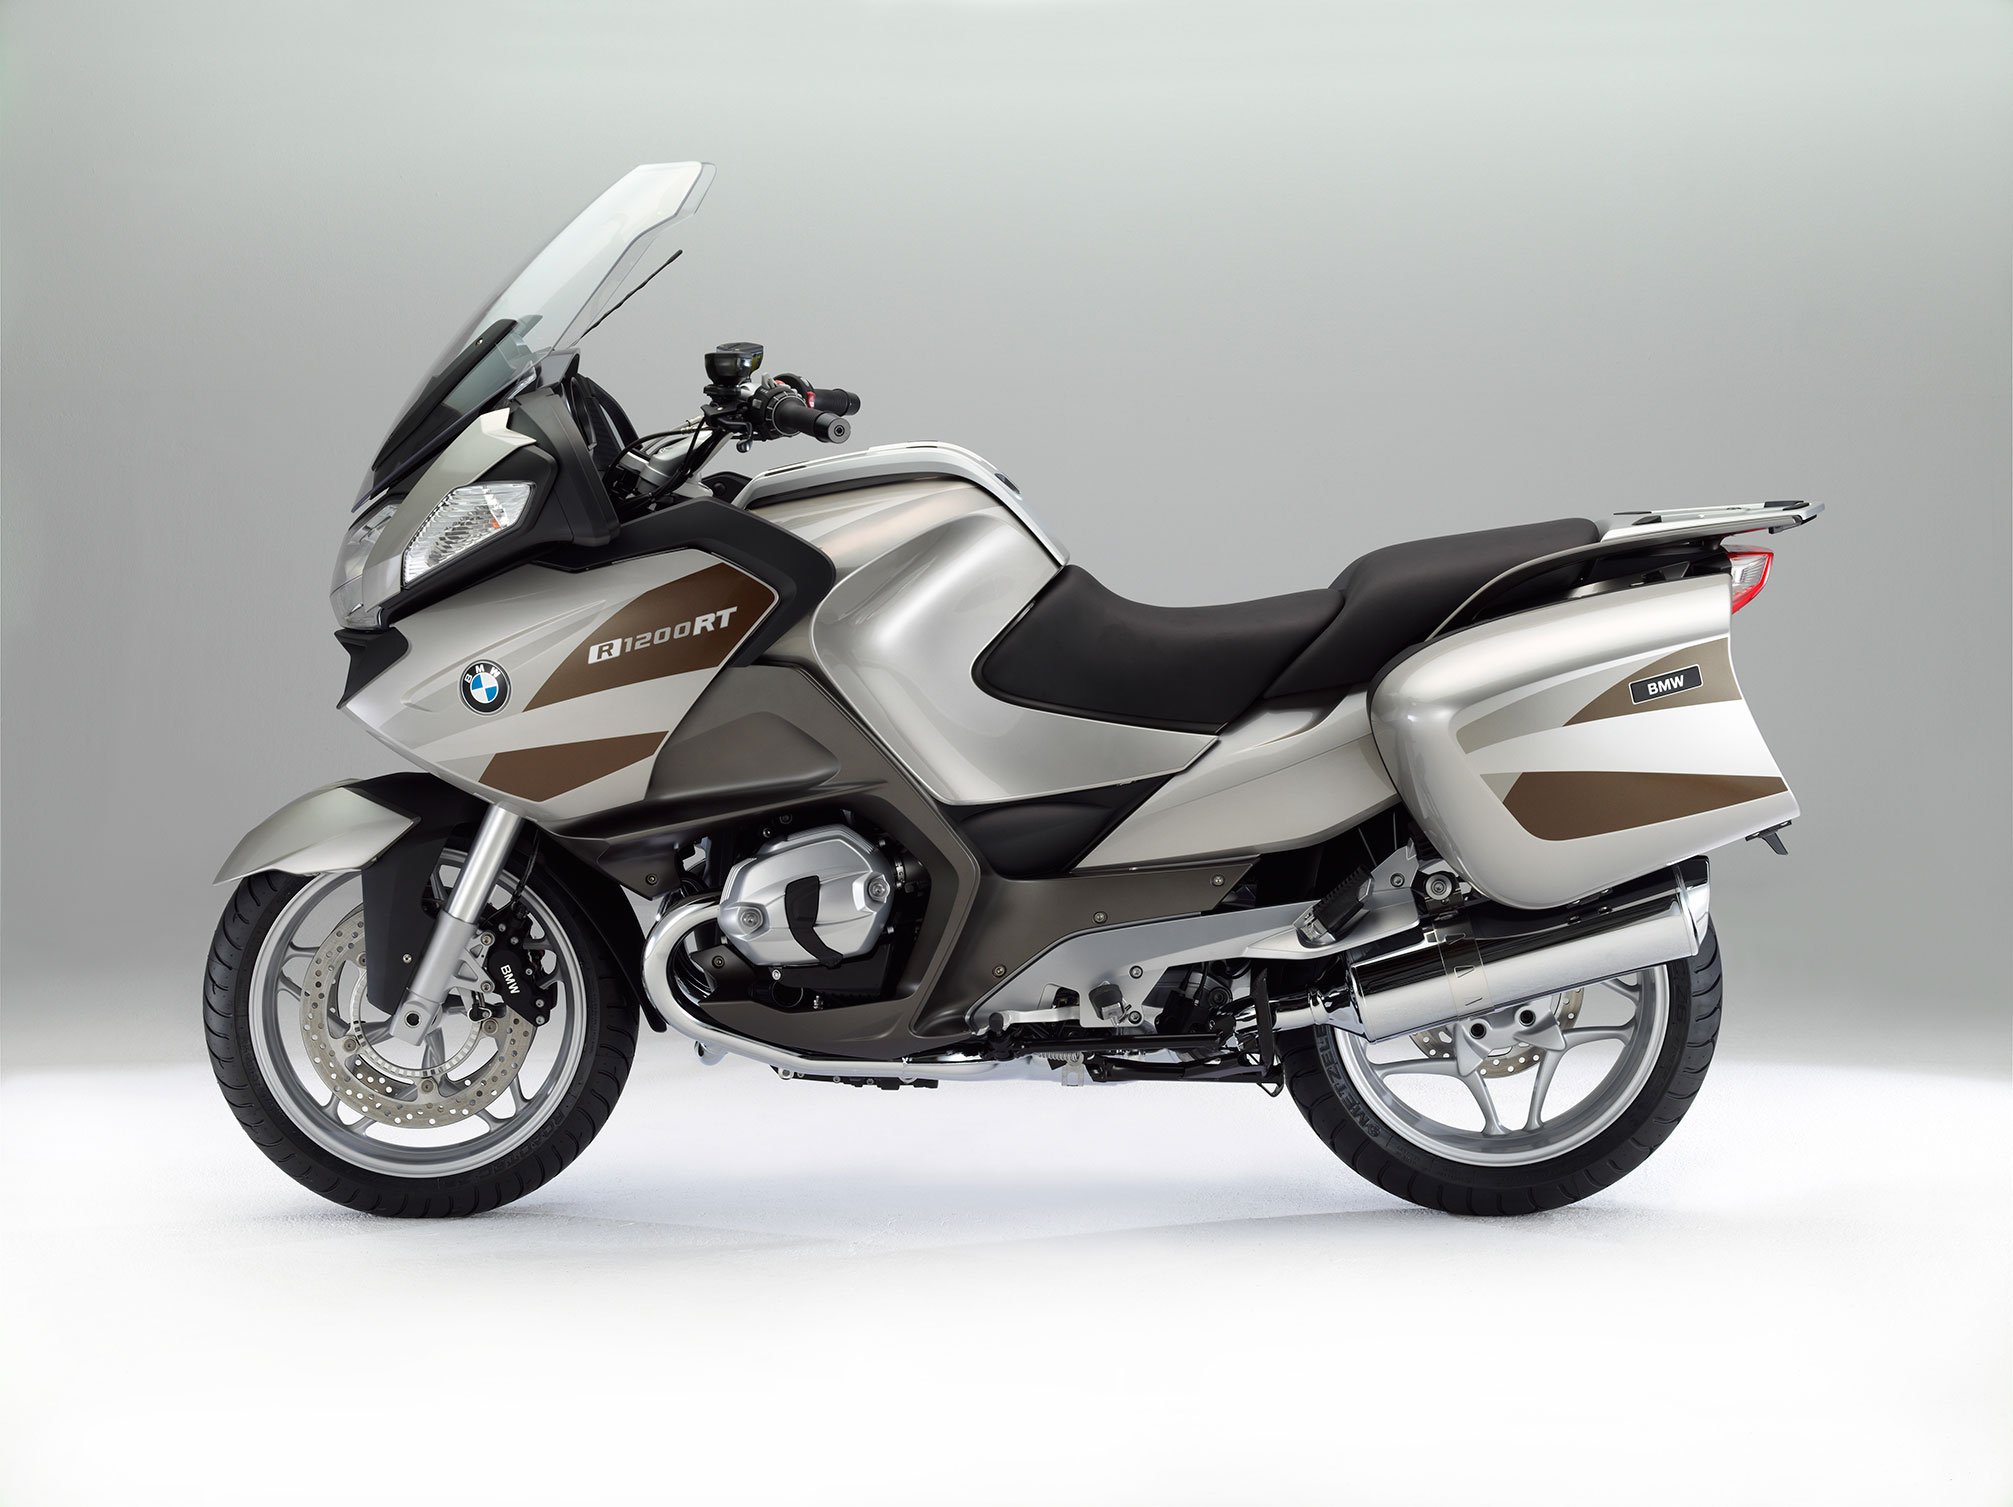 bmw r 1200 rt specs - 2012, 2013 - autoevolution